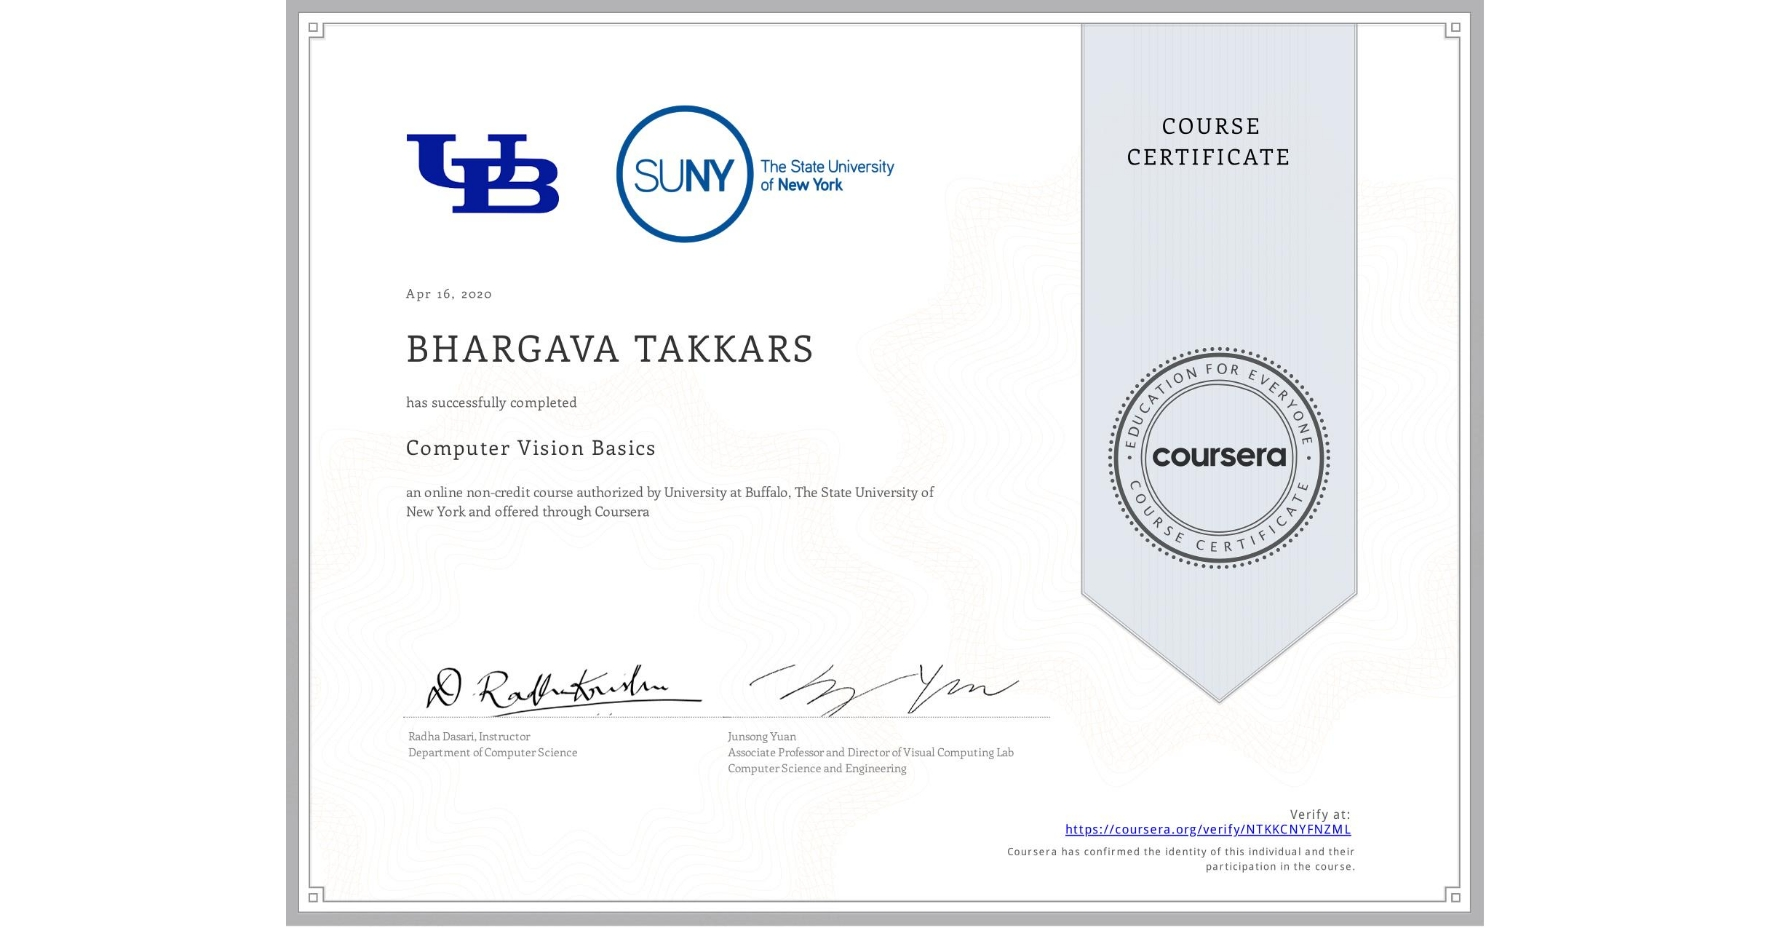 View certificate for BHARGAVA TAKKARS, Computer Vision Basics, an online non-credit course authorized by University at Buffalo & The State University of New York and offered through Coursera